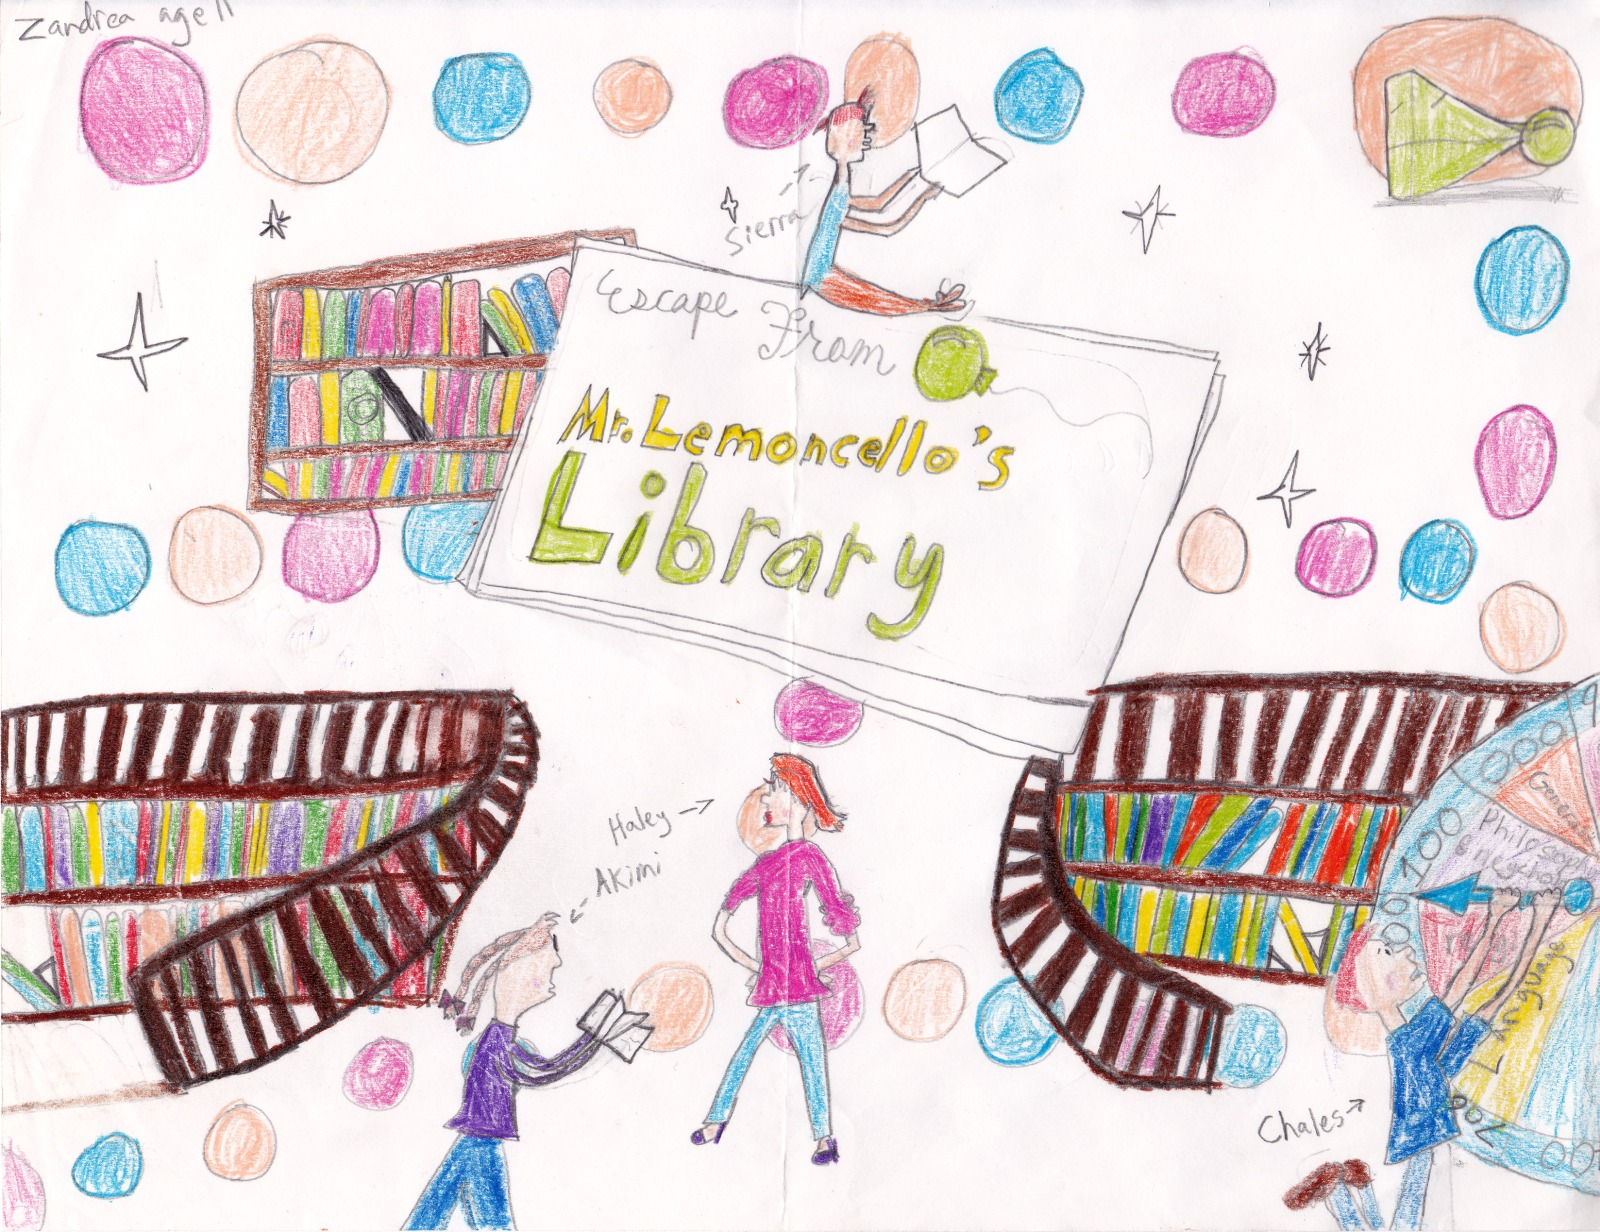 Escape From Mr Lemoncello S Library Artwork By Zandrea